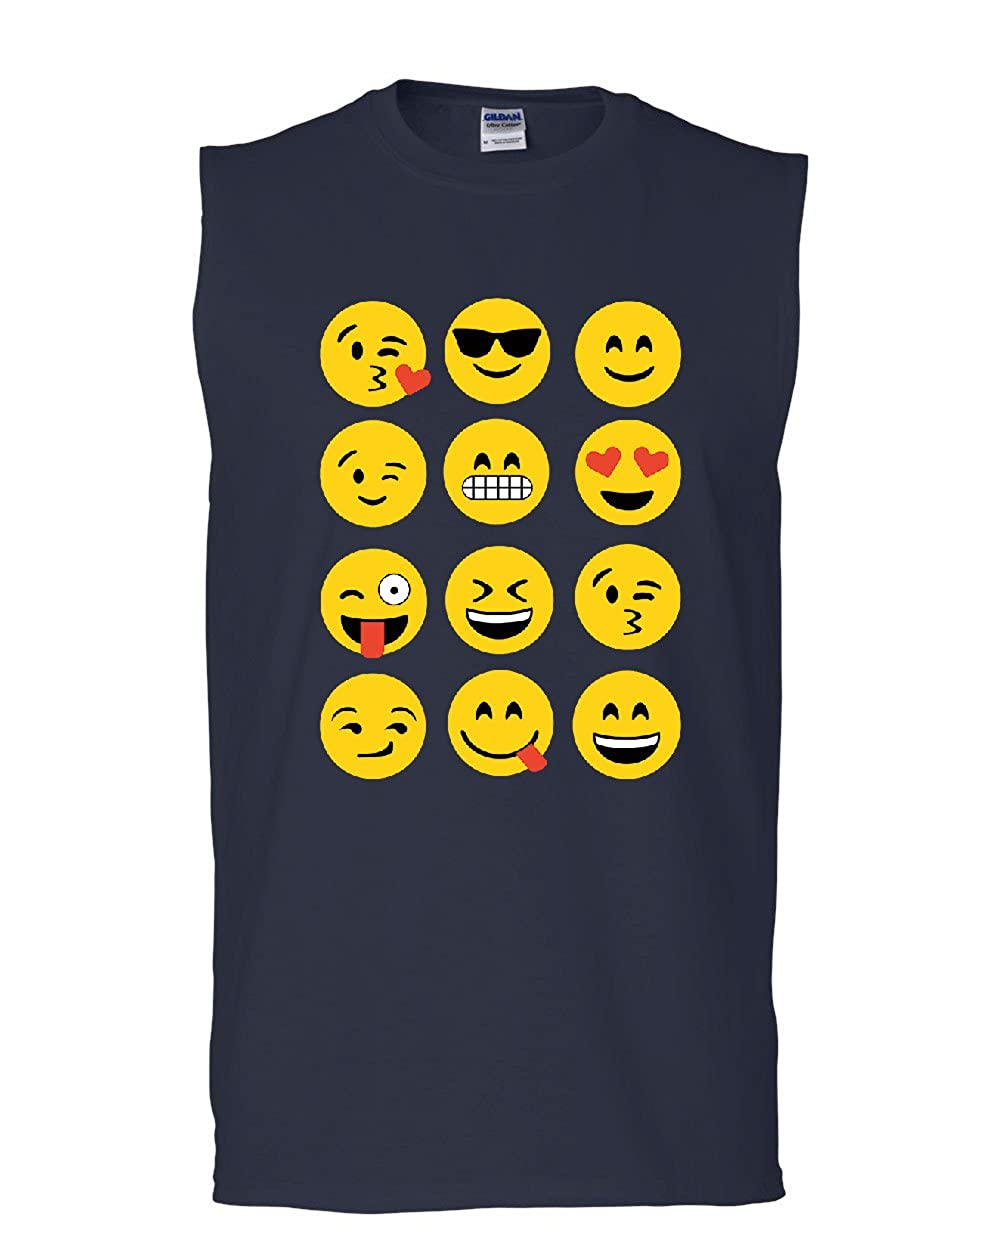 Emoji Funny Muscle Shirt Smiley Face Texting